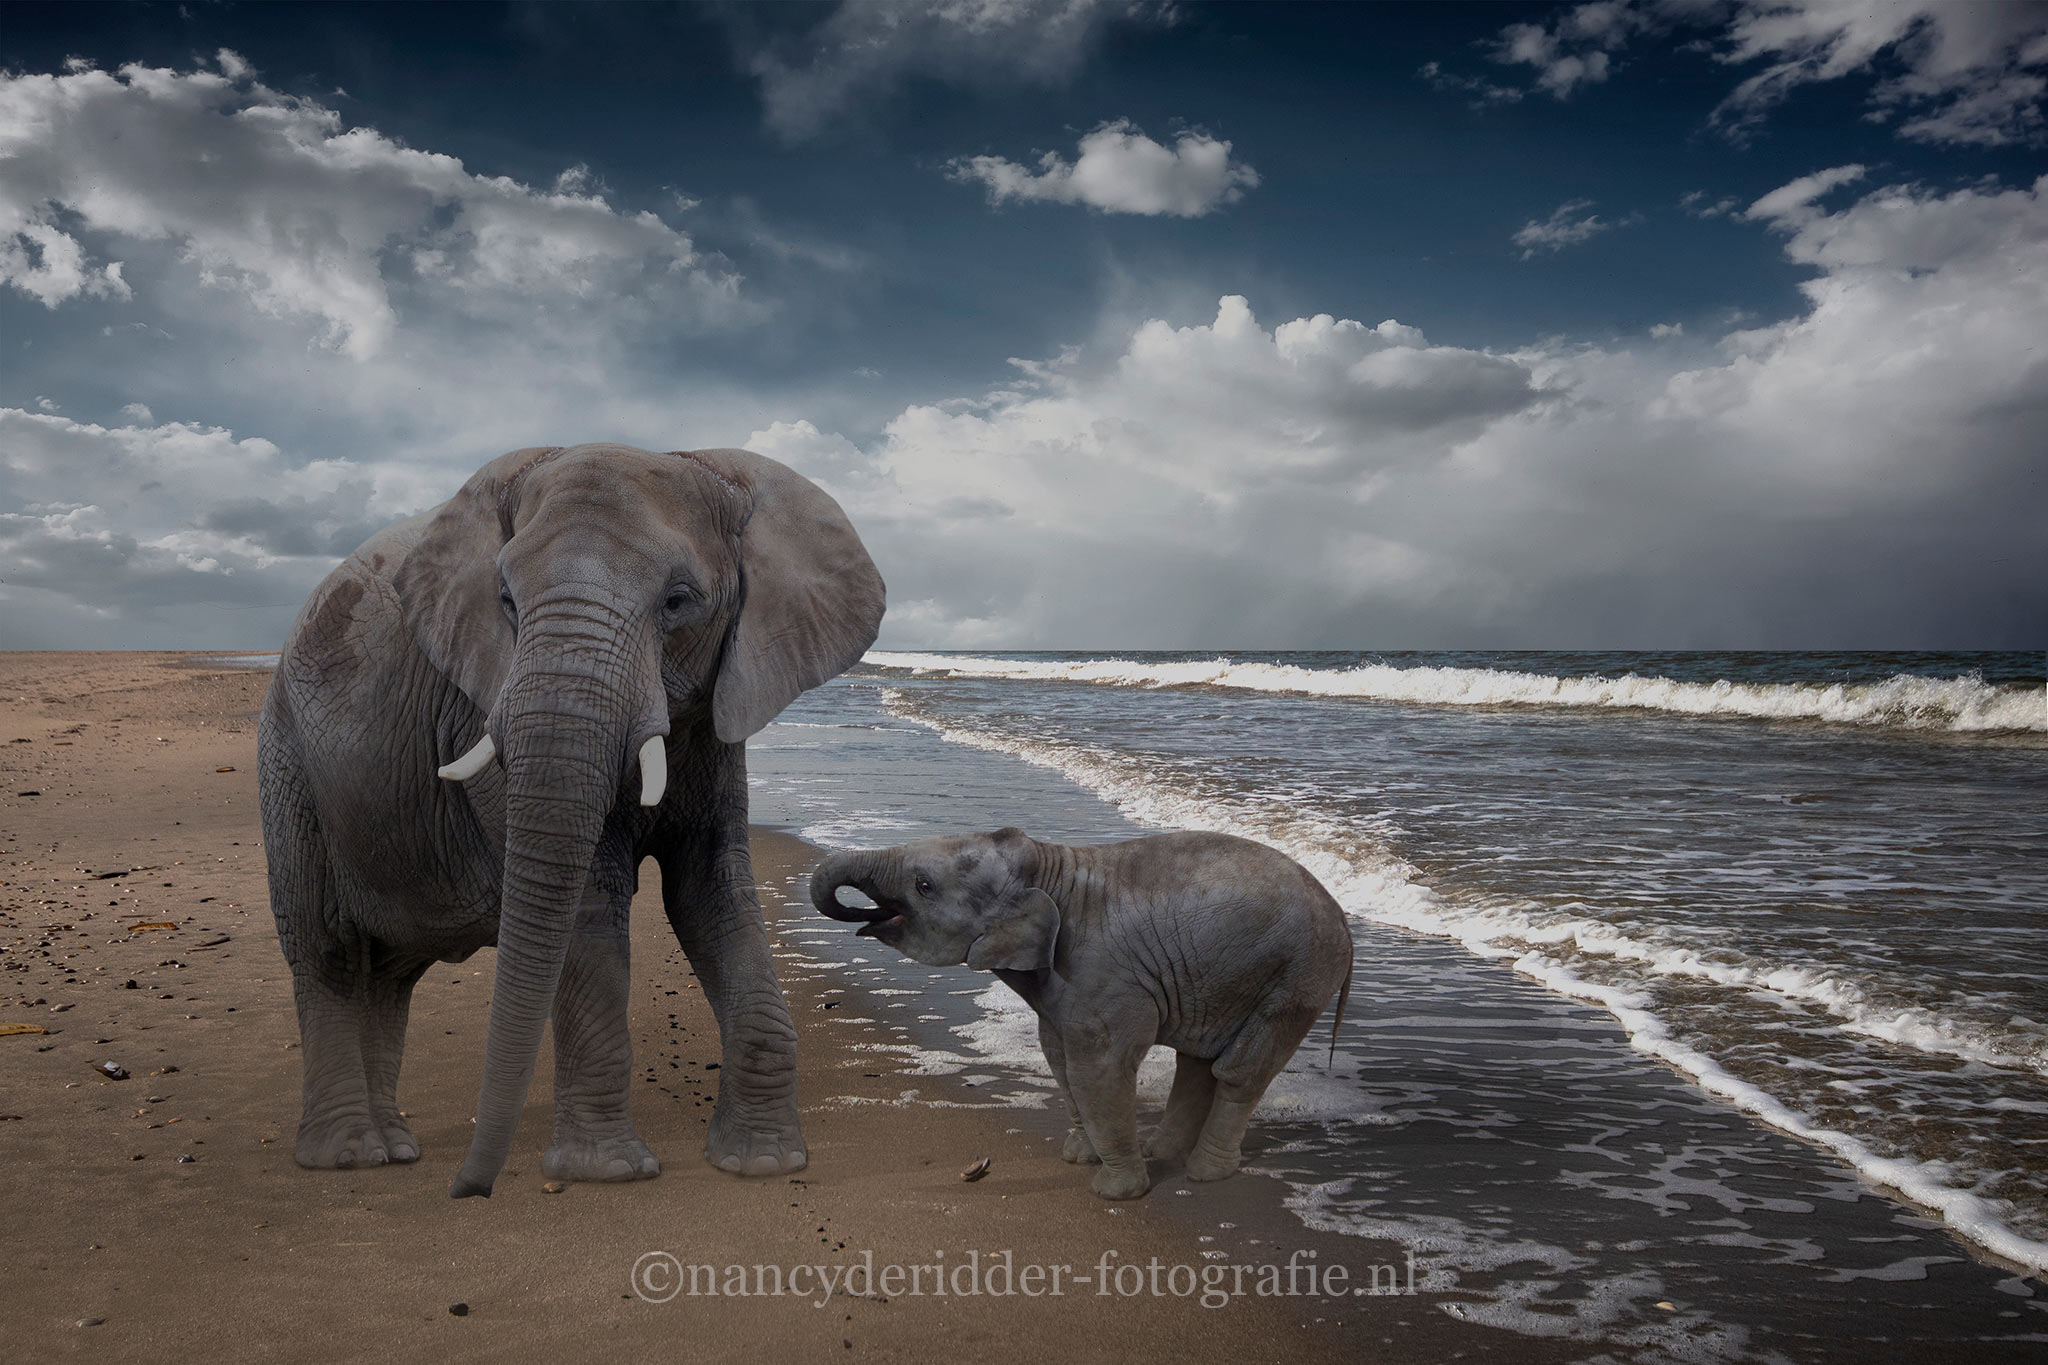 Elephants on the beach